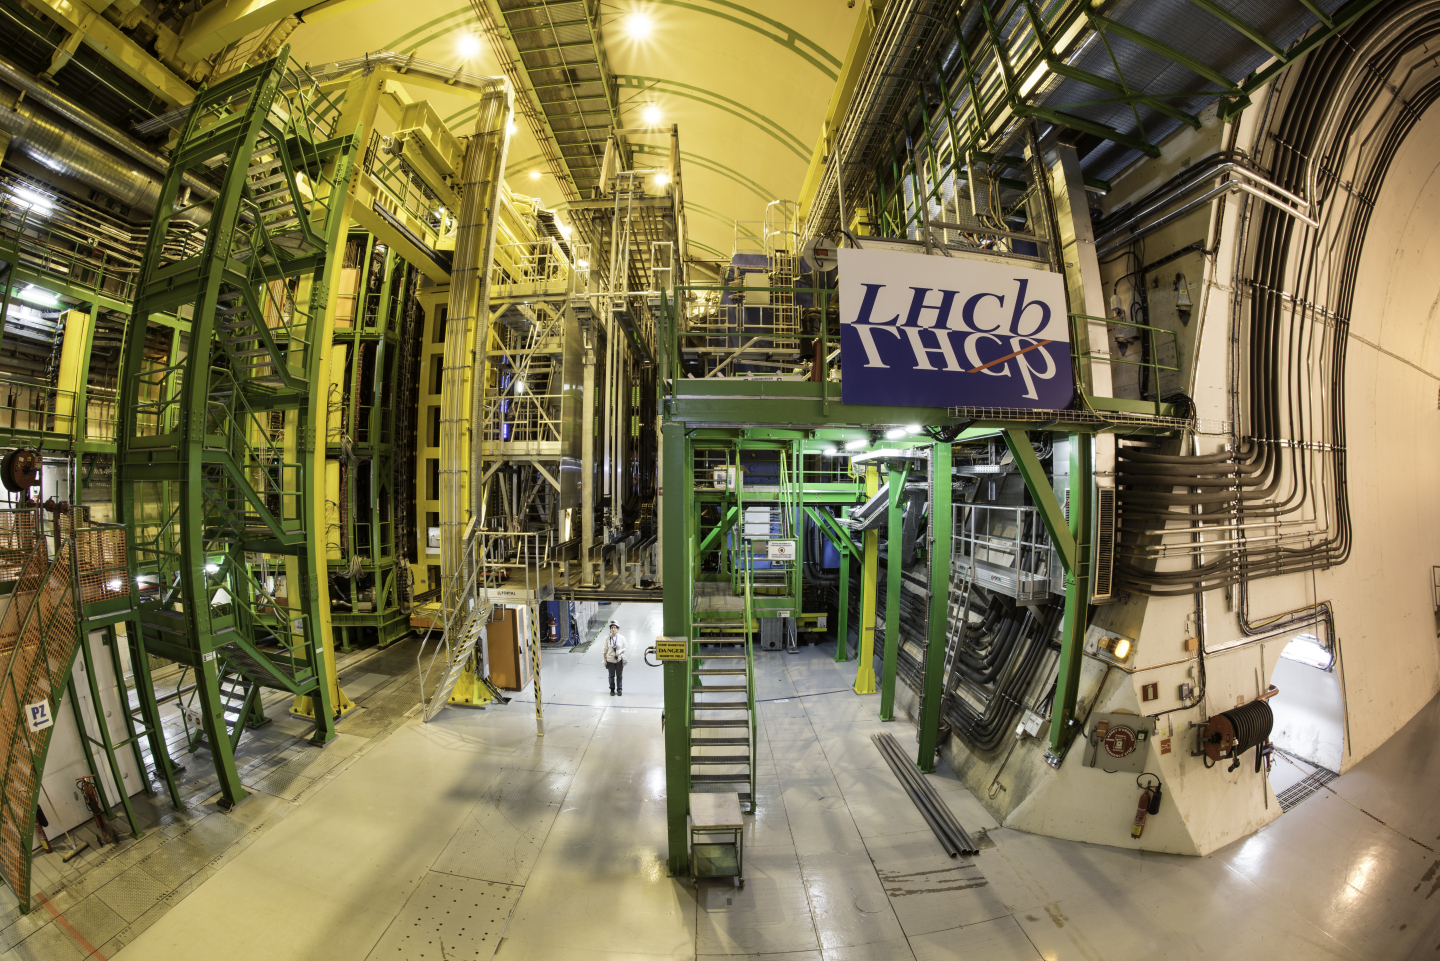 LHCb,CAvern,IP8